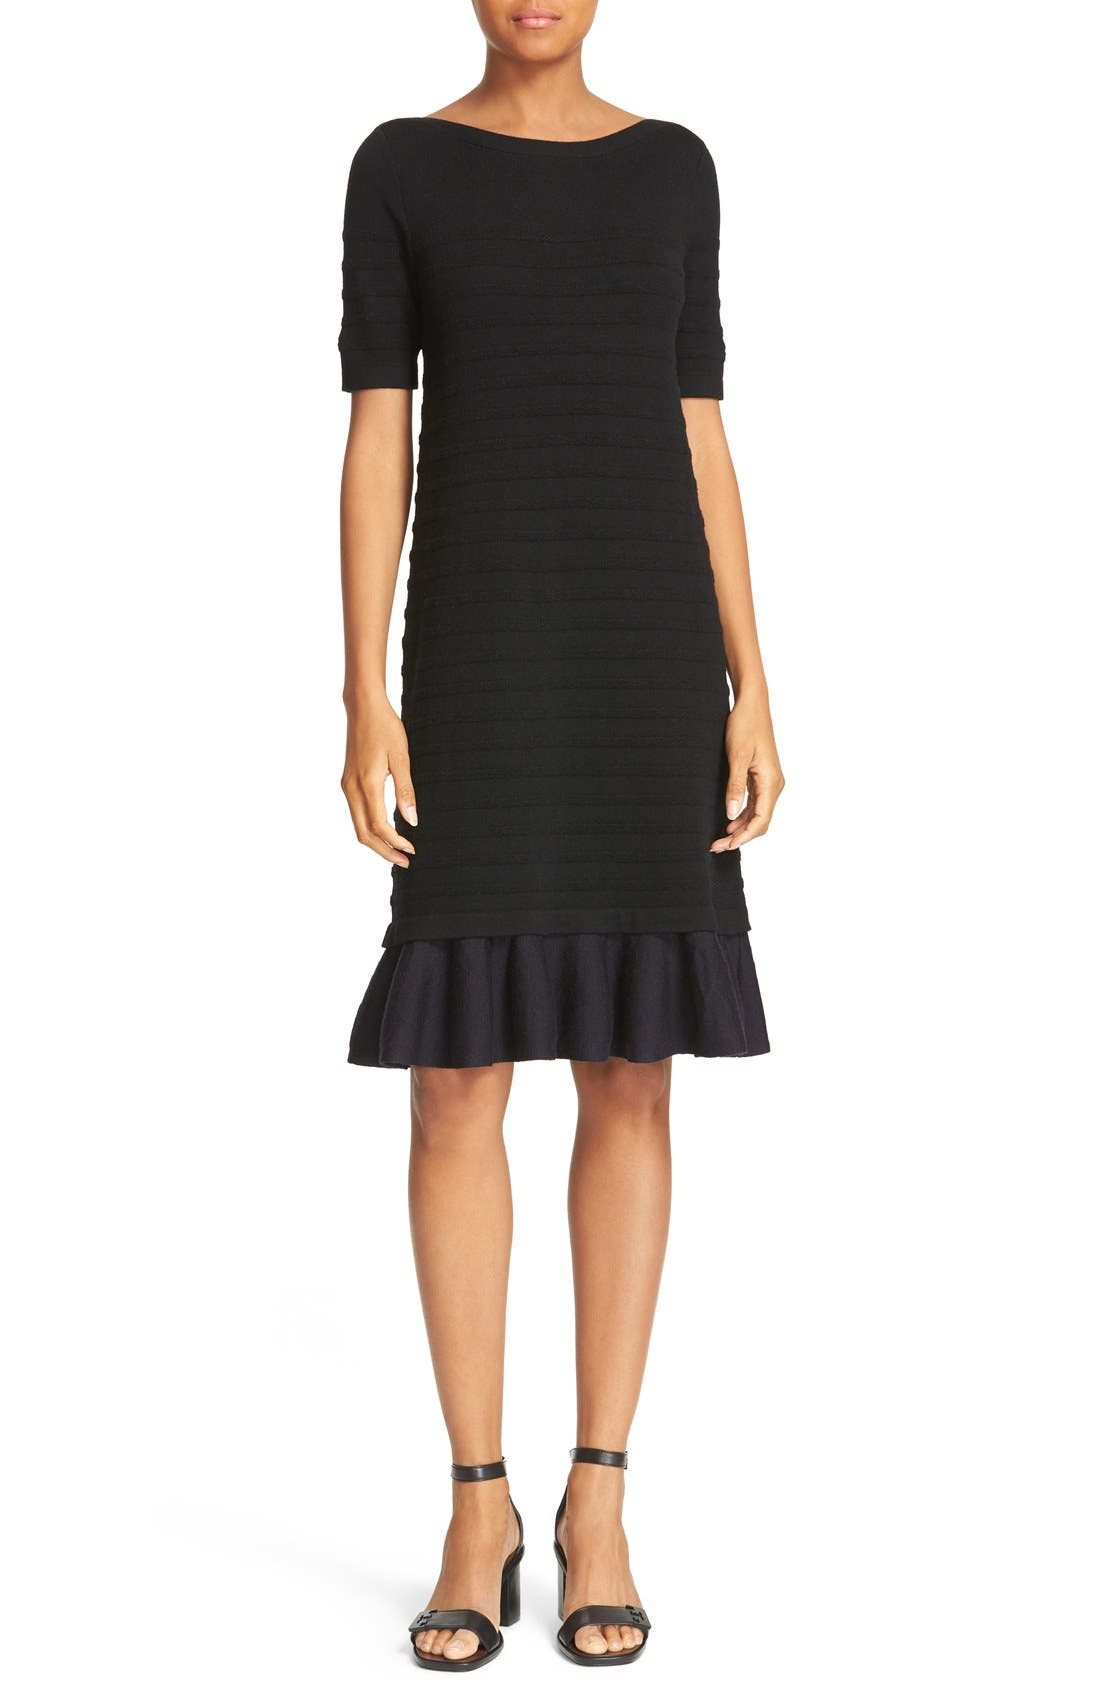 Alternate Image 1 Selected - Tory Burch Giselle Textured Merino Wool Sweater Dress